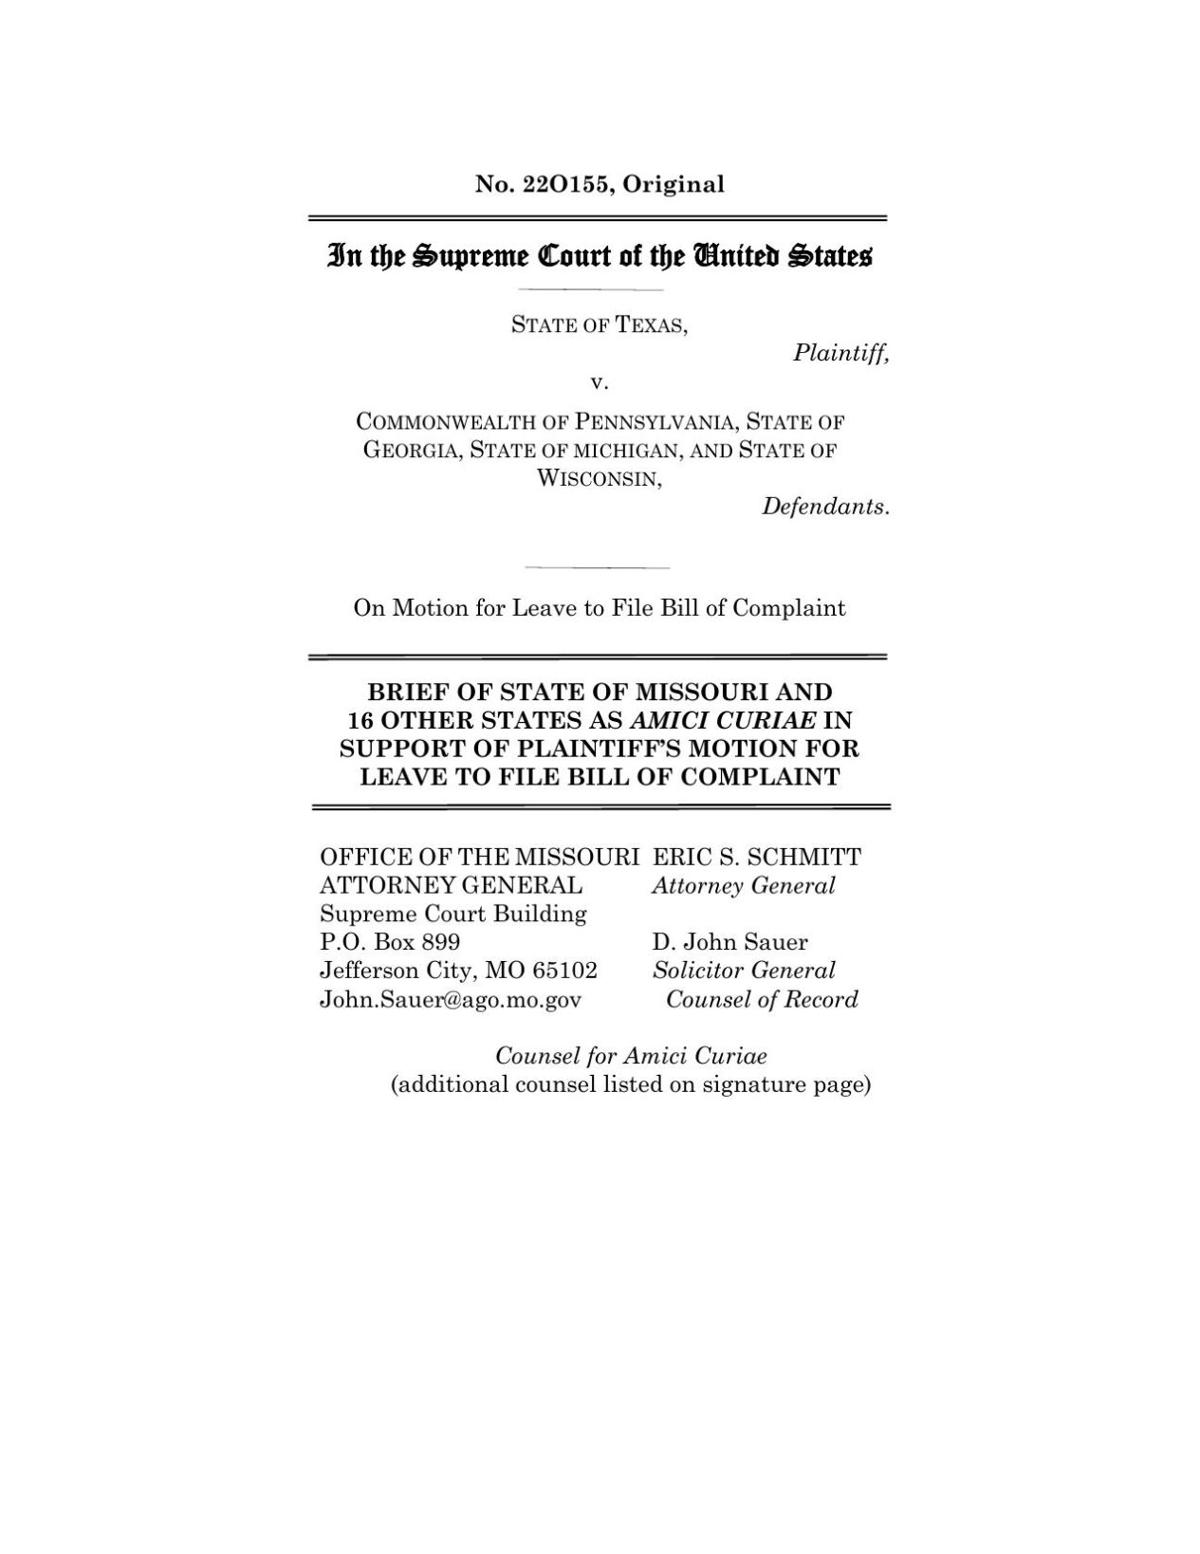 Missouri brief on vote counts SCOTUS